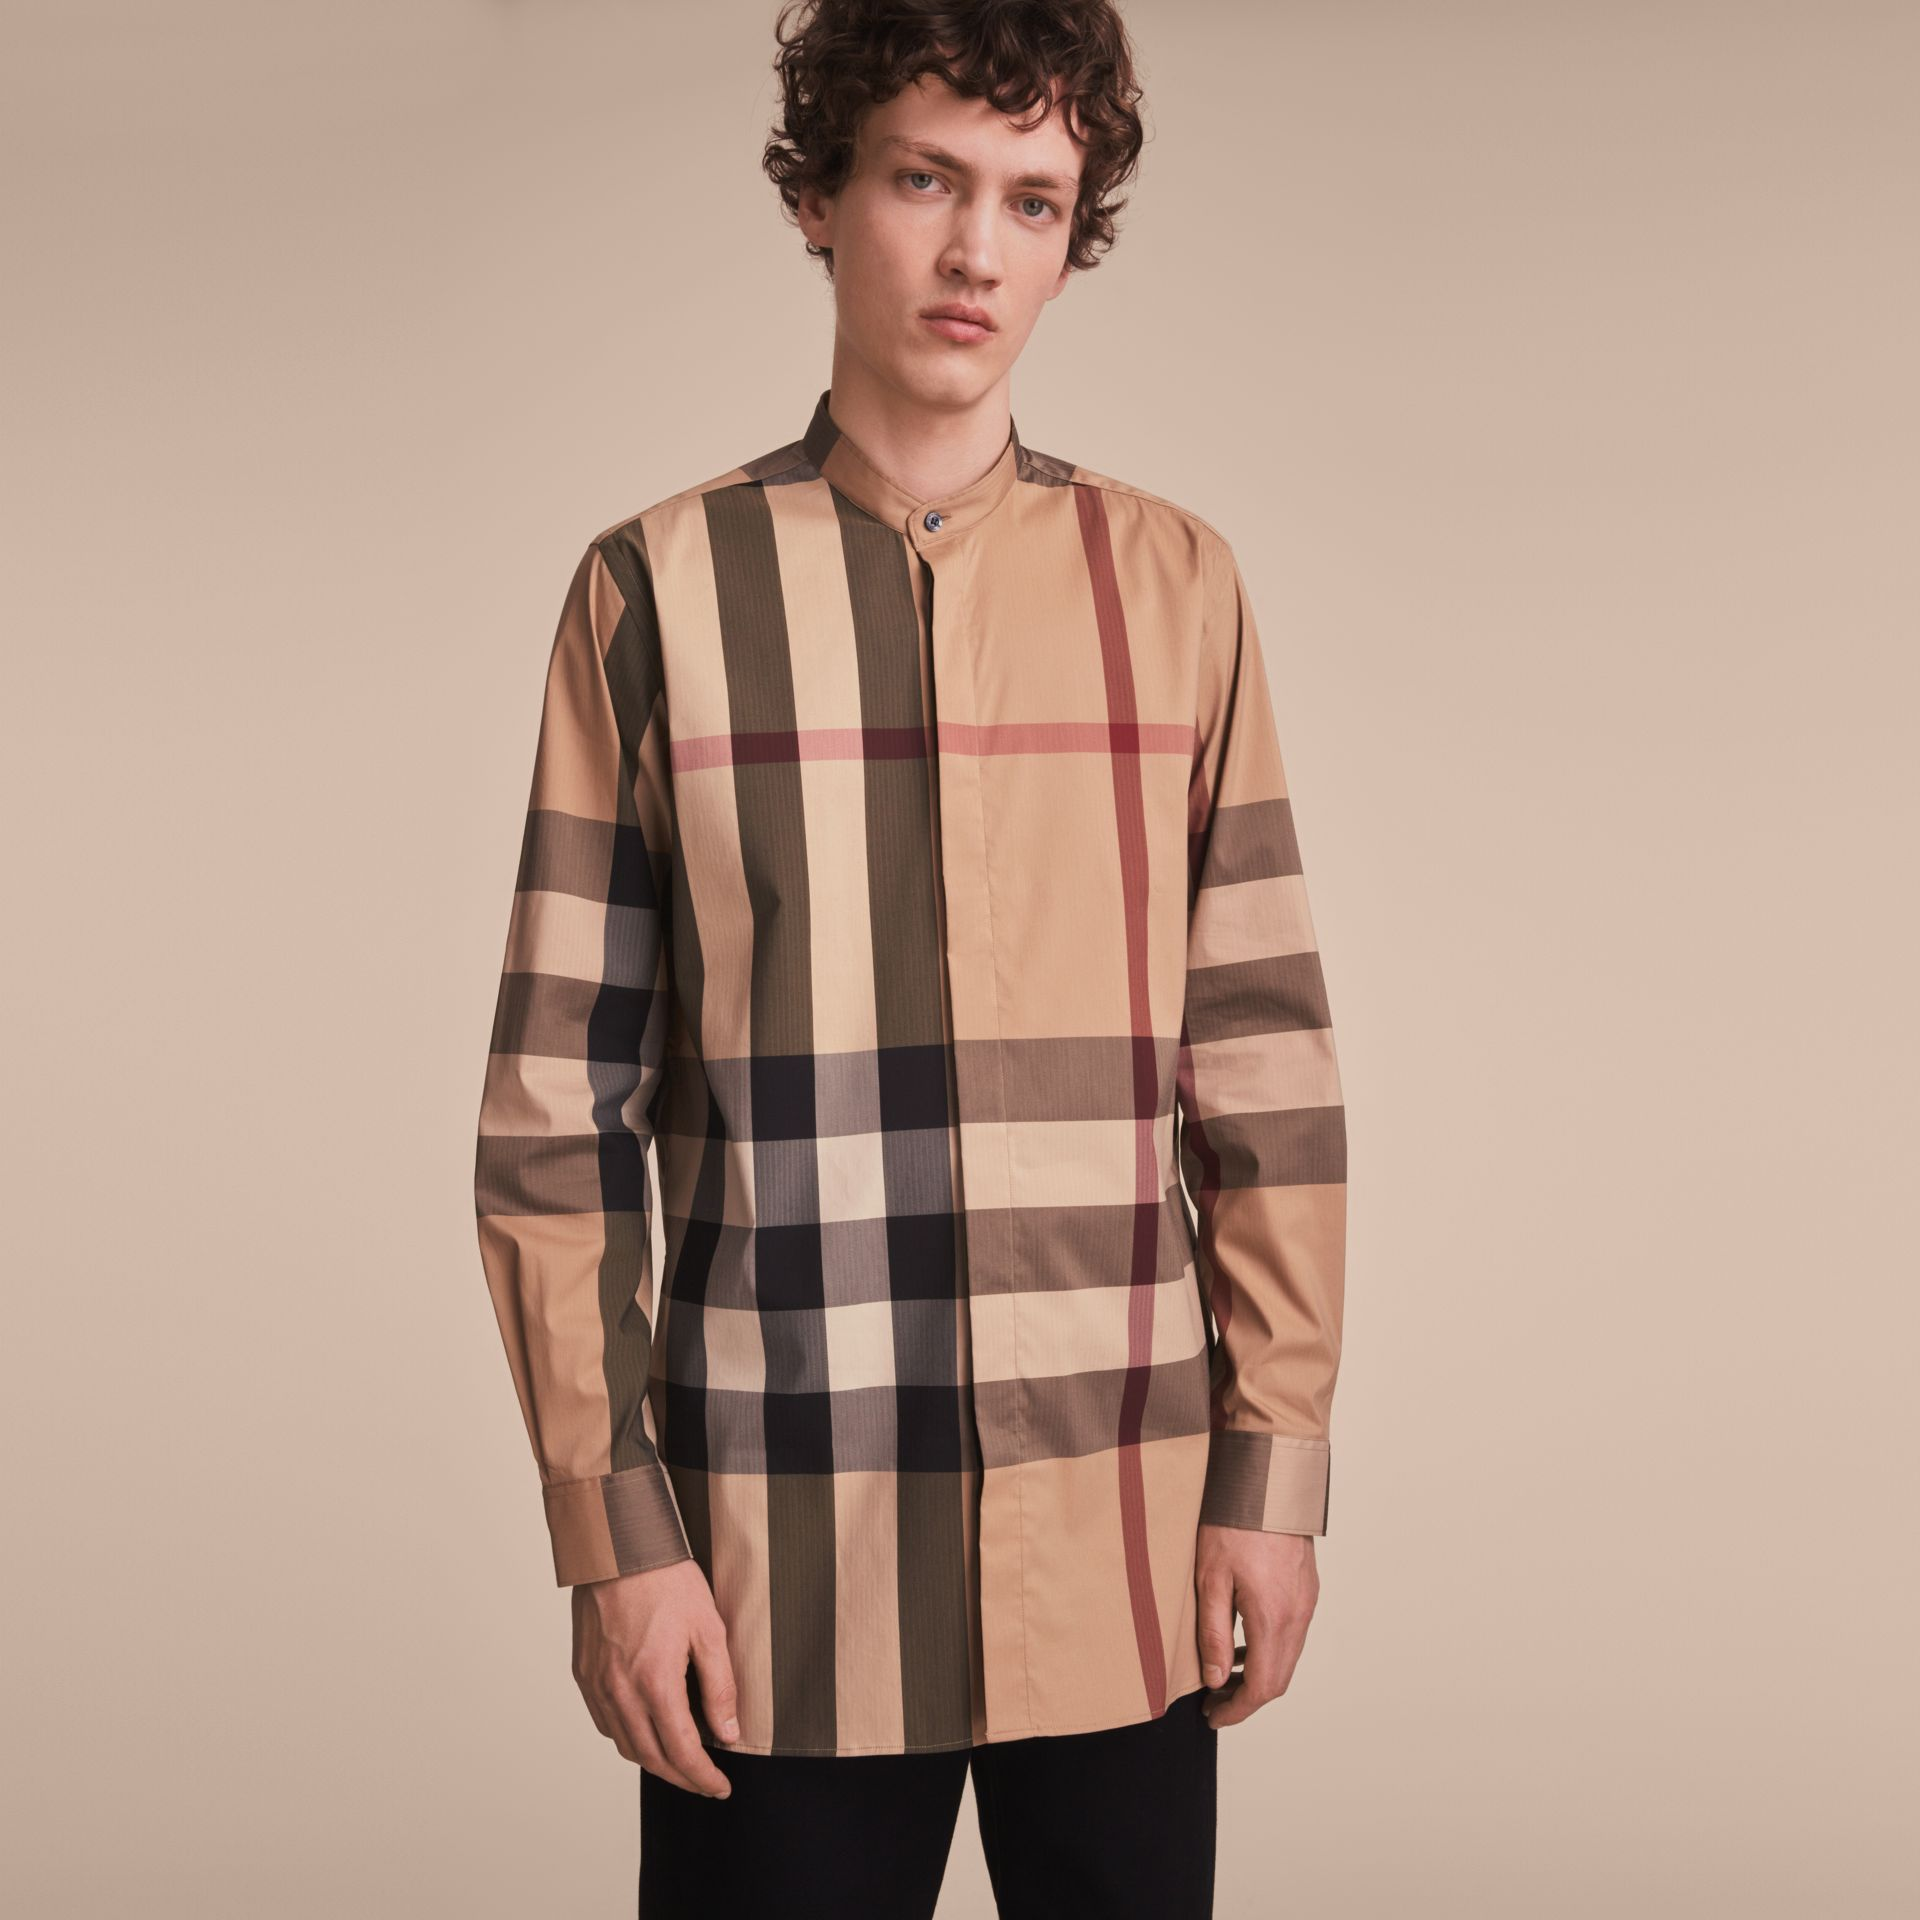 Grandad Collar Check Cotton Blend Shirt in Camel - Men | Burberry - gallery image 6